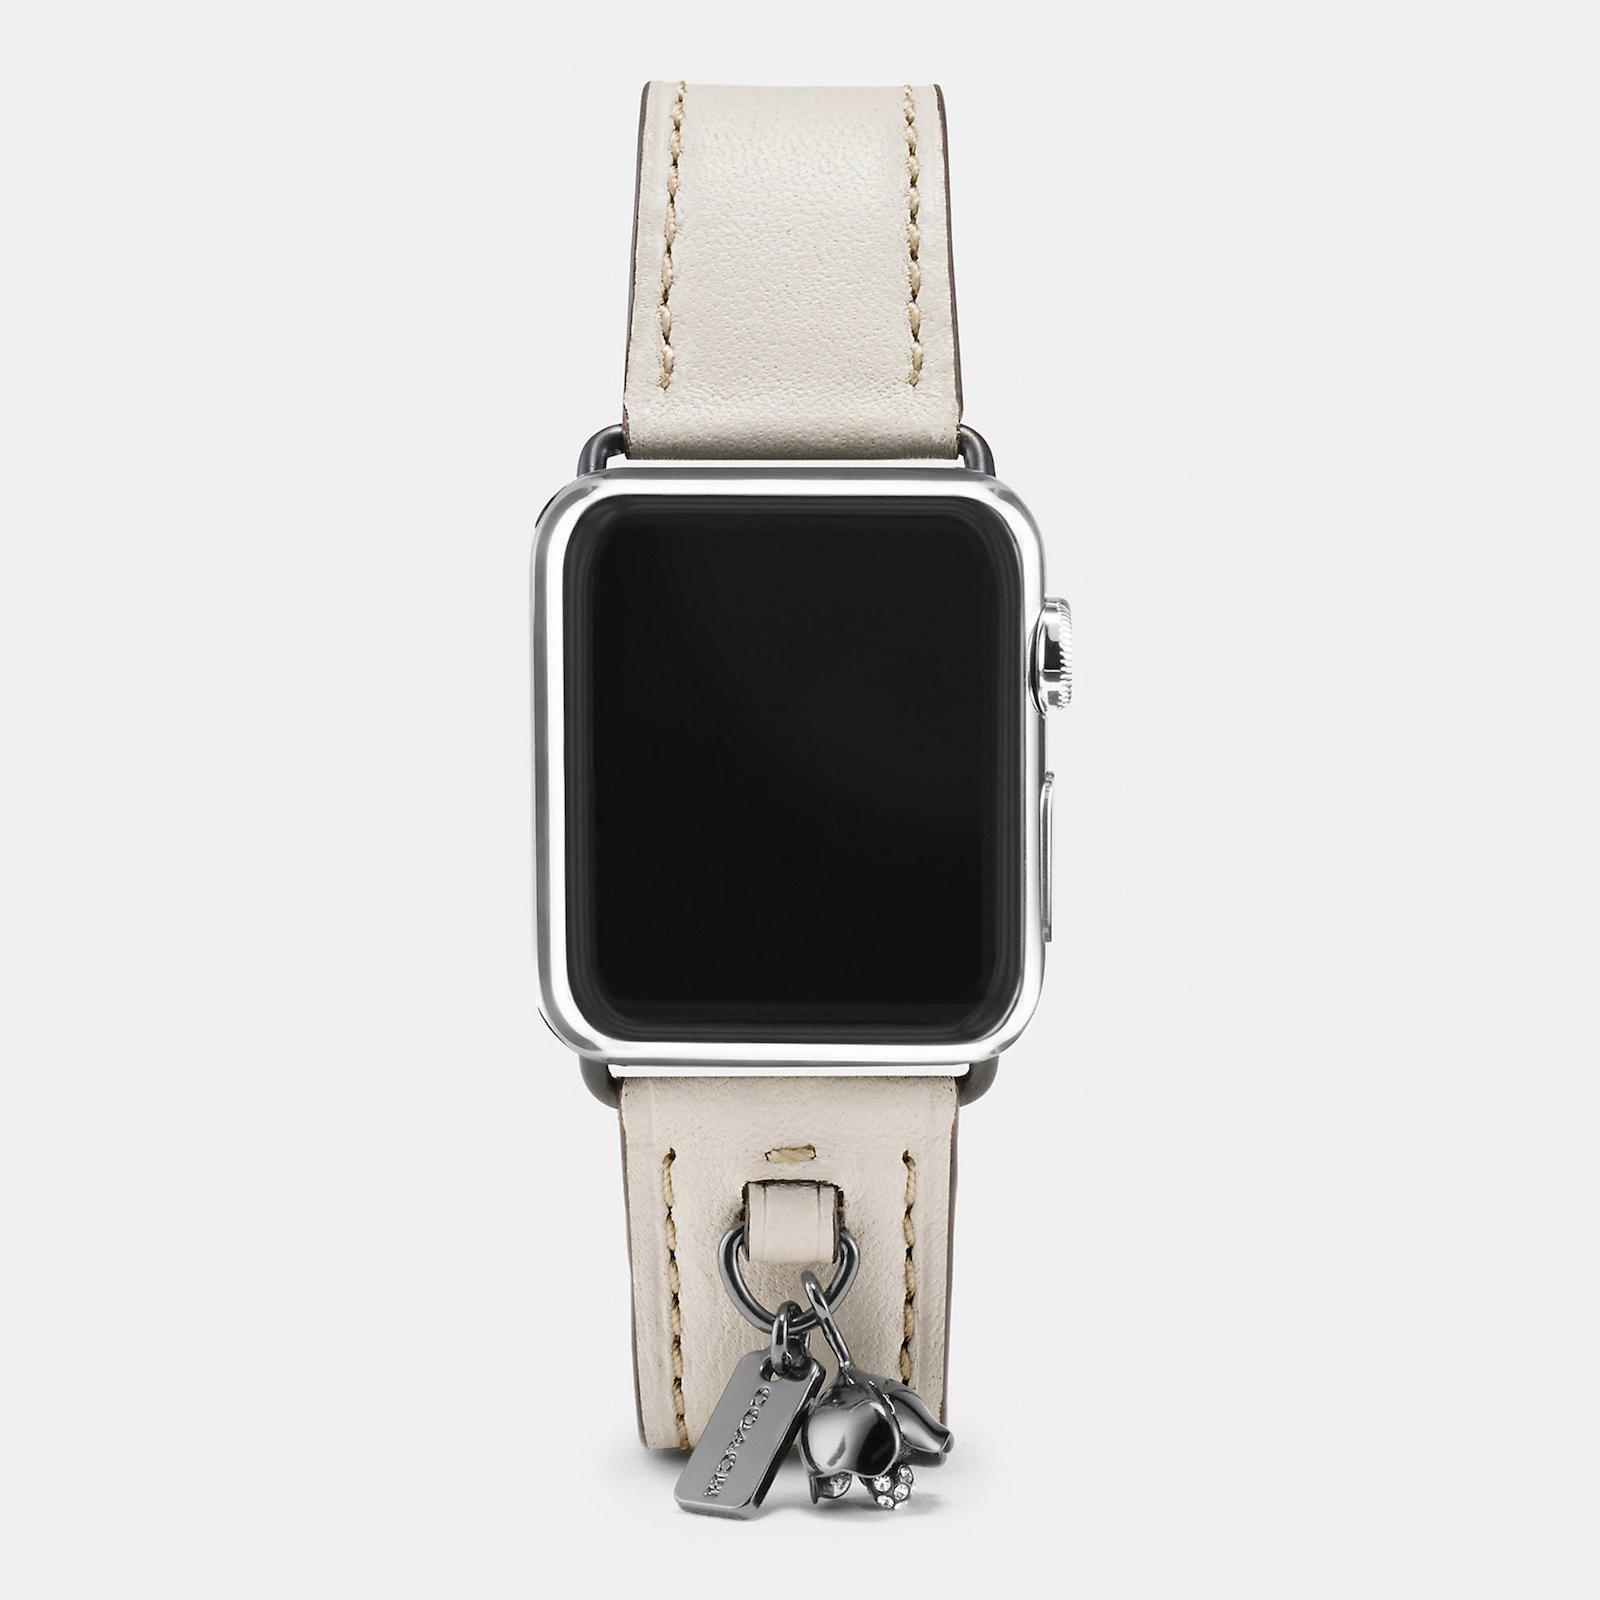 Apple-Watch-Coach-Band-Autumn-Season-7.jpeg